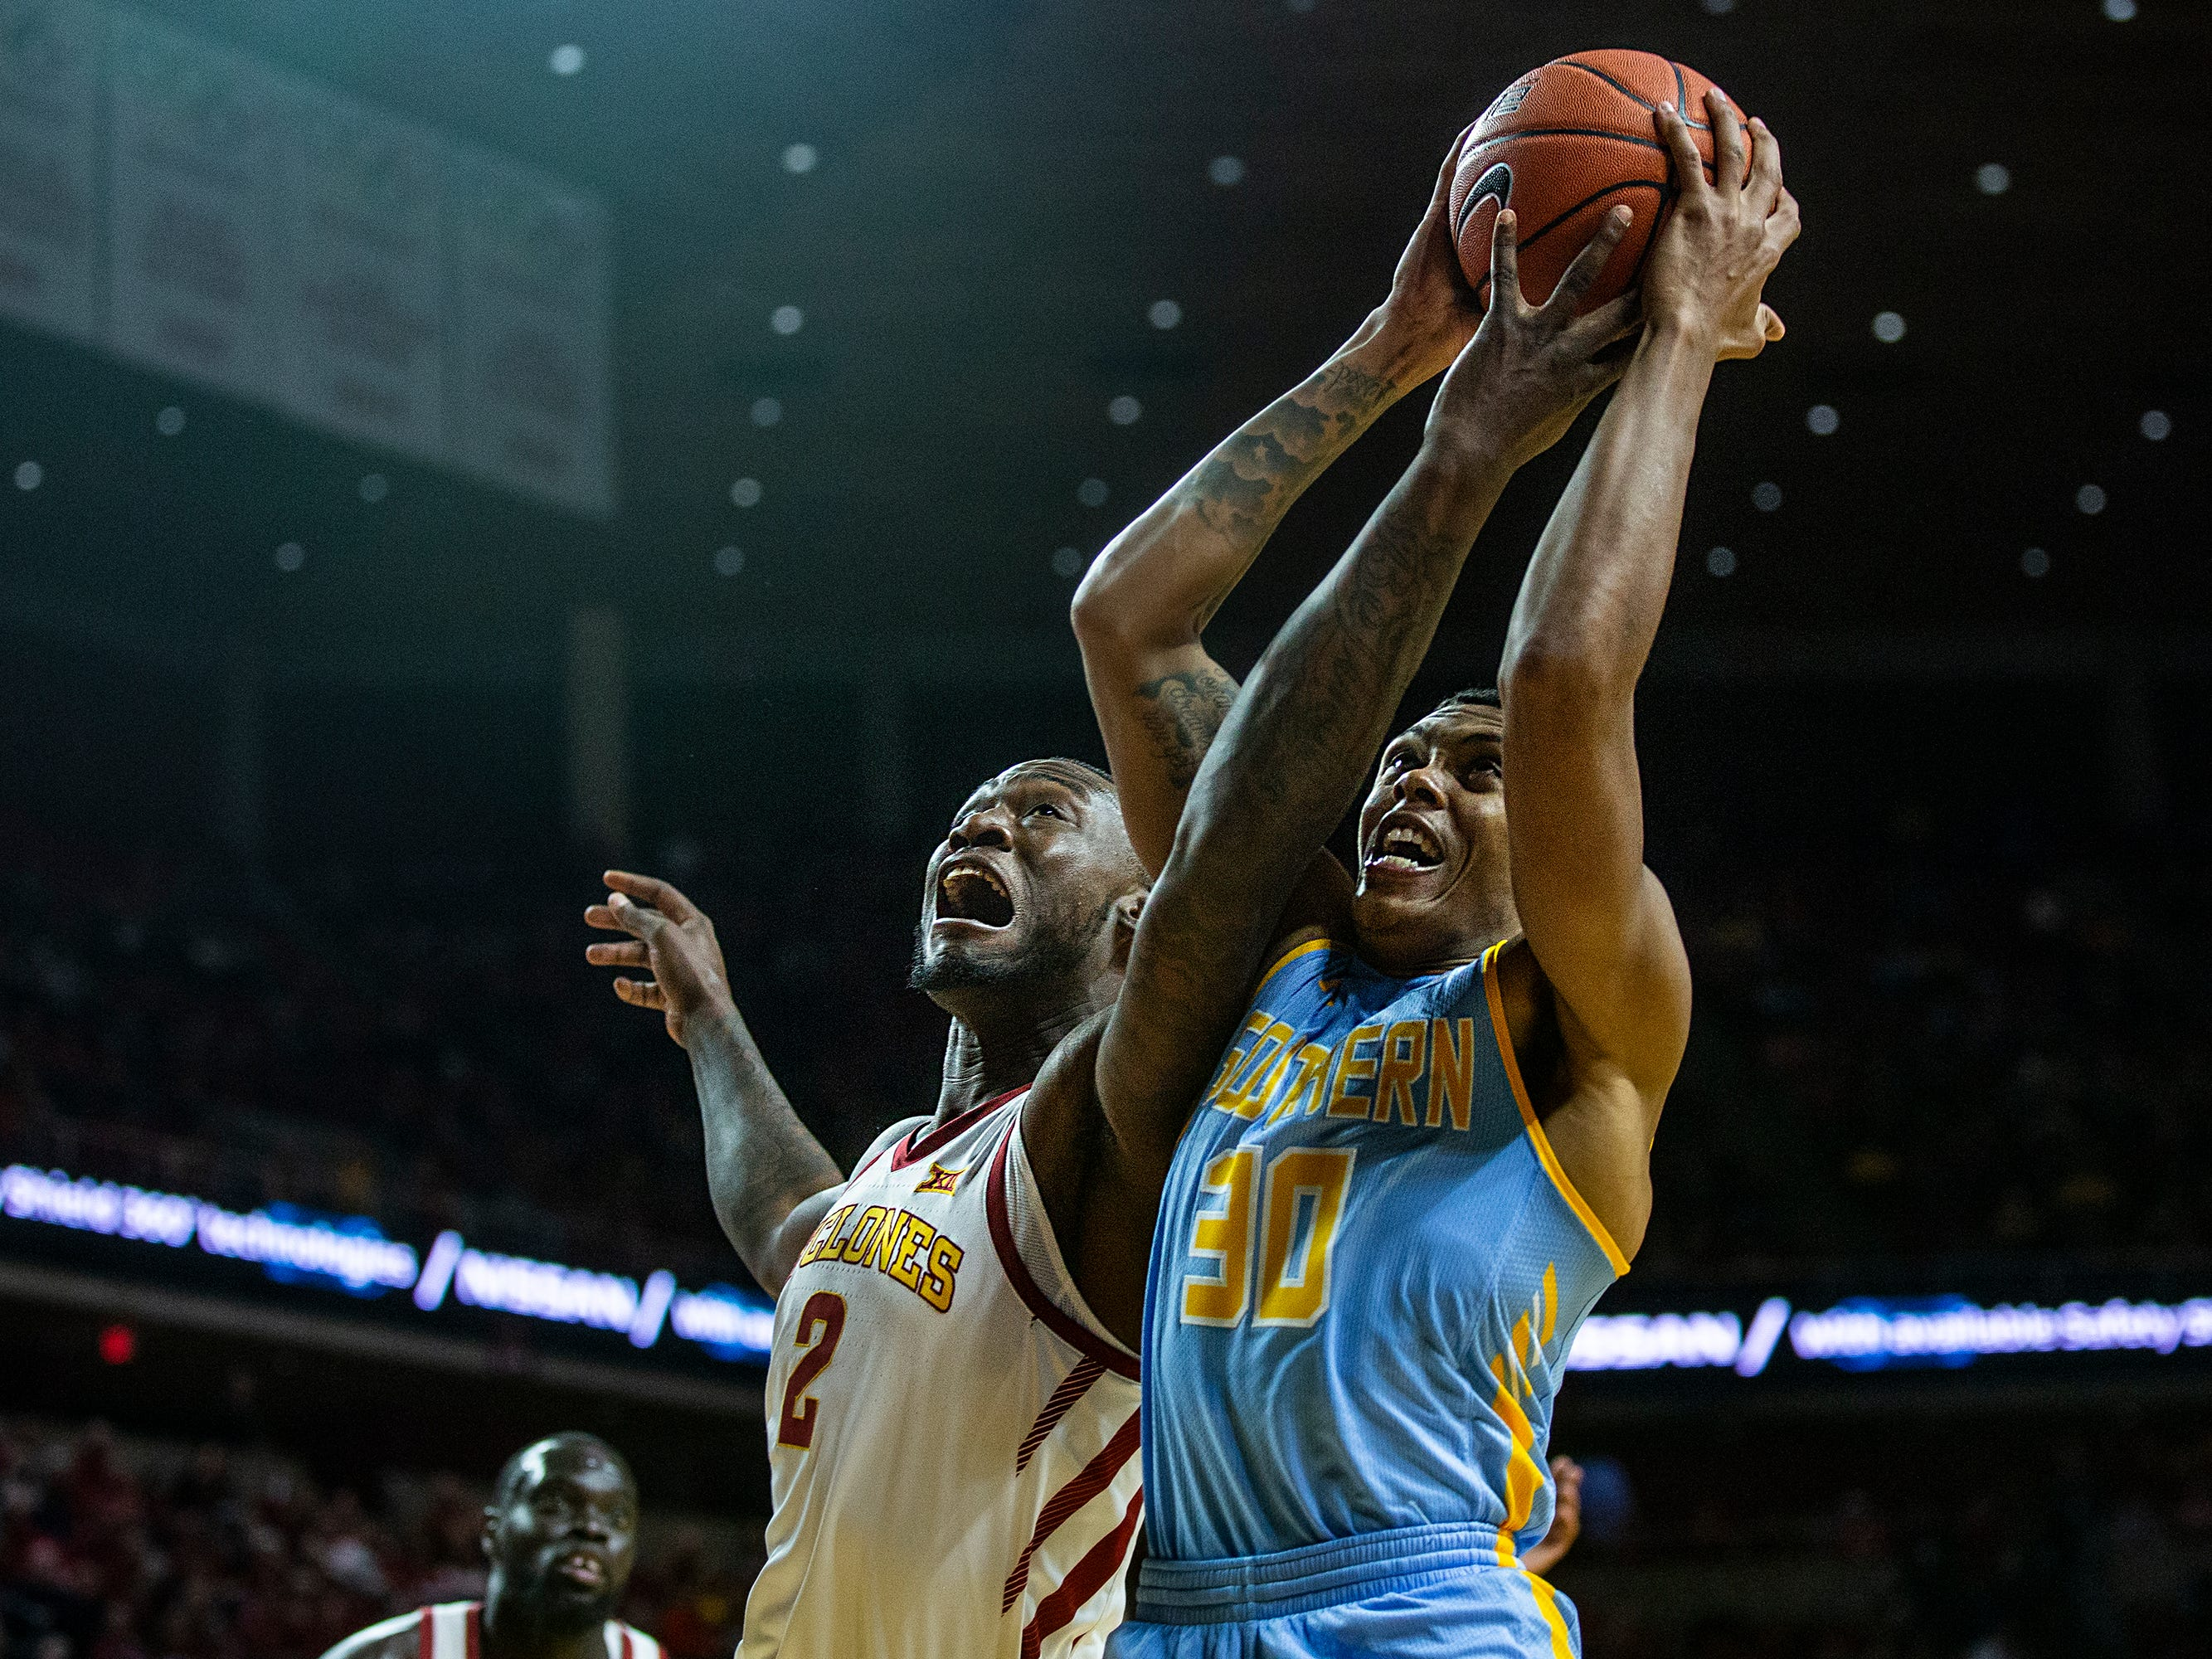 Iowa State's Cameron Lard and Southern's DeRias Johnson reach for a rebound during the Iowa State men's basketball game against Southern on Sunday, Dec. 9, 2018, in Hilton Coliseum.